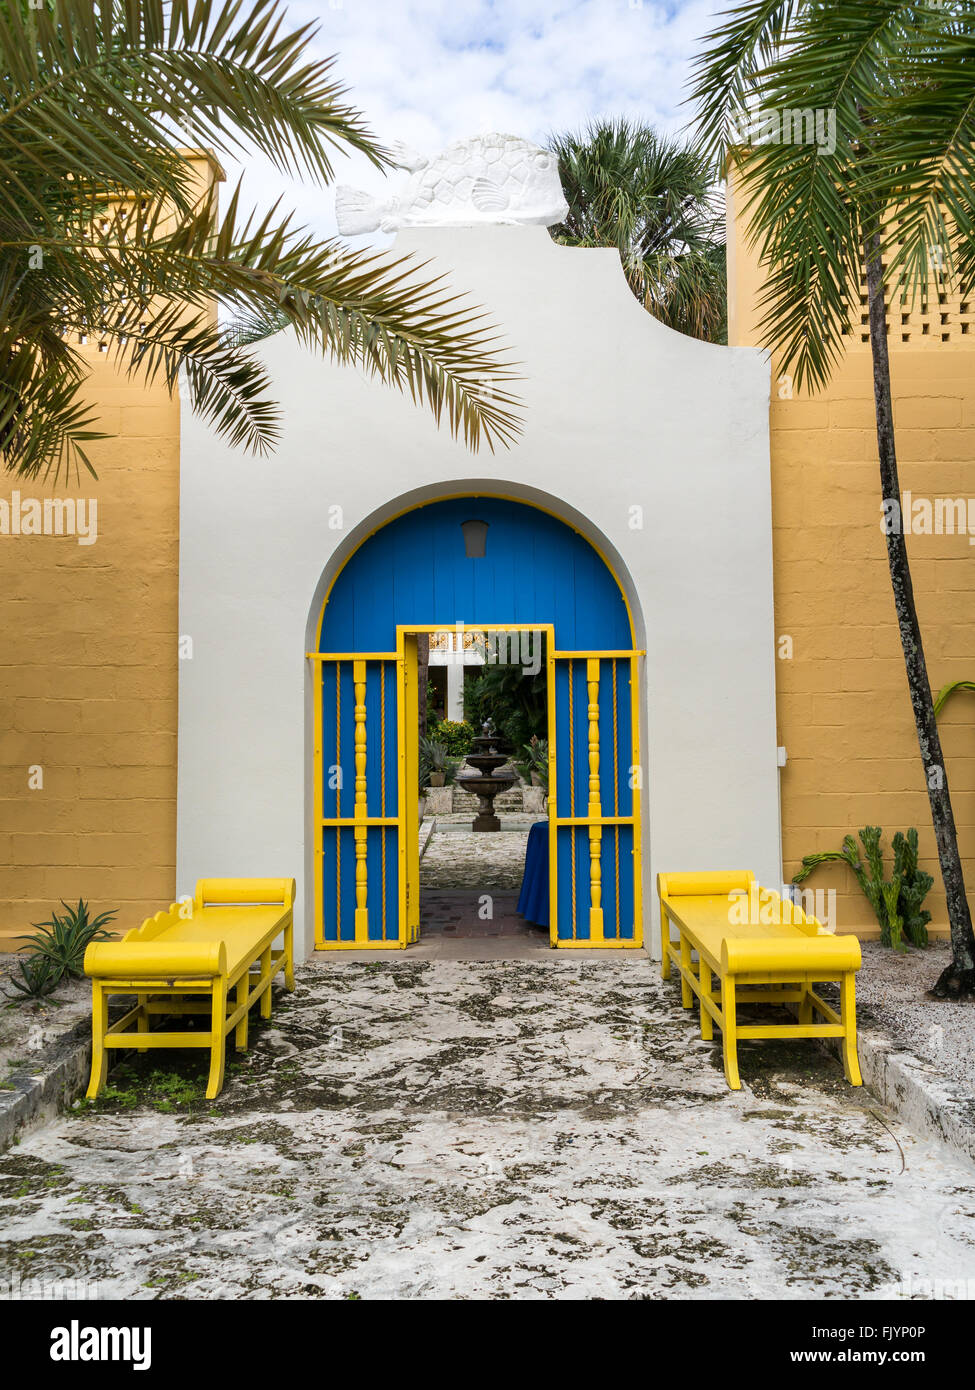 Entrance of Bonnet House estate and museum in Fort Lauderdale, Florida, USA Stock Photo